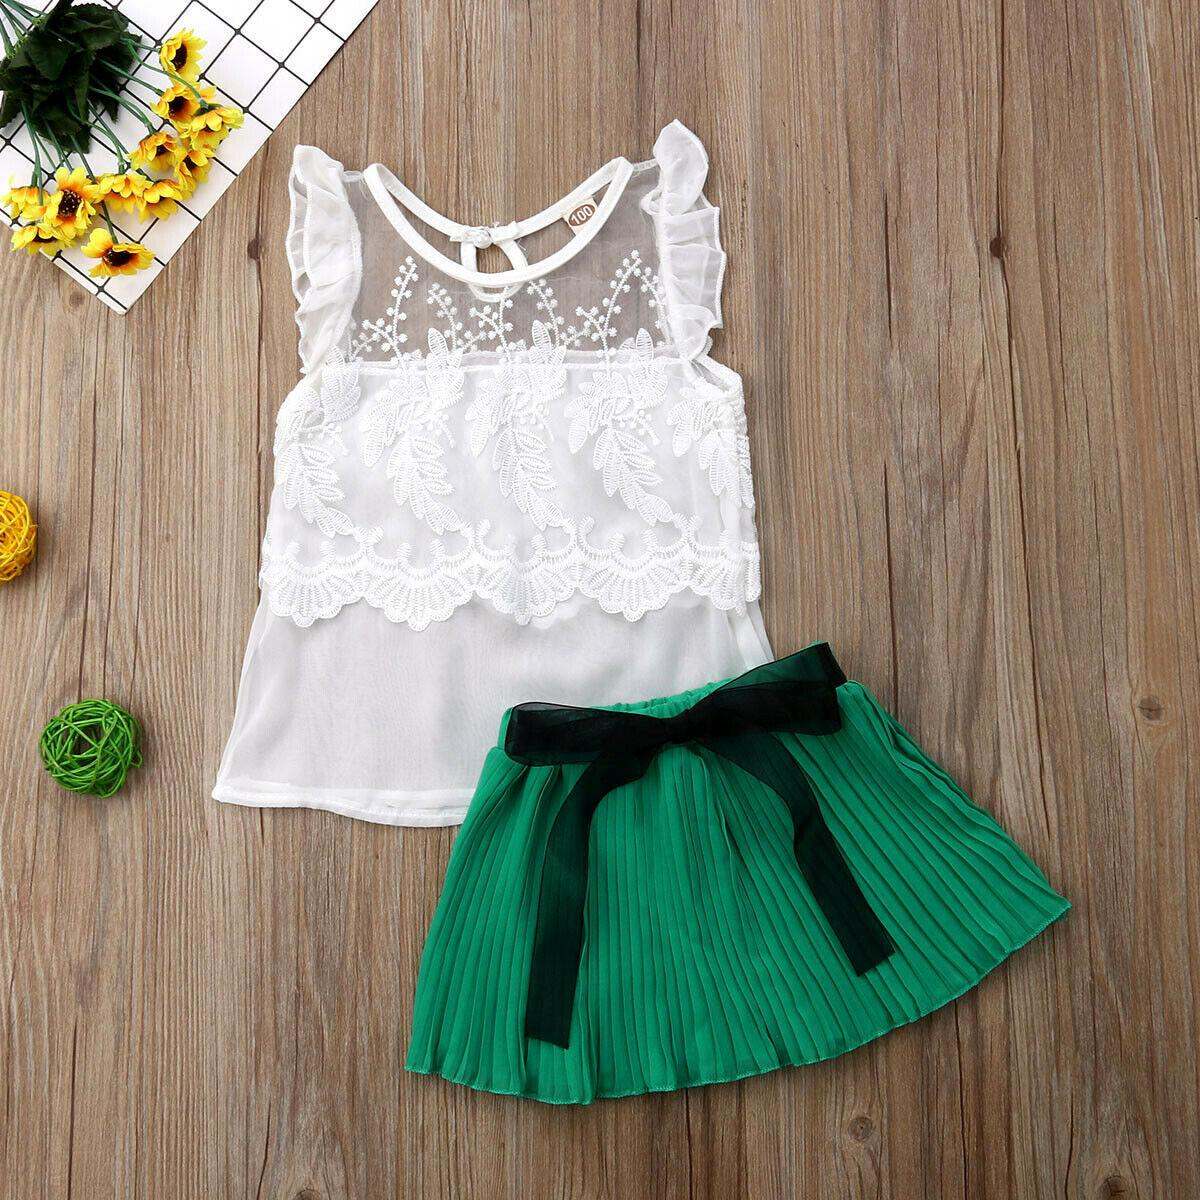 Emmababy Fashion 2pcs Girl Set 18M-5Y US Toddler Baby Girls Leisure Breathable Lace Short Top+Fashion Chiffon Skirt